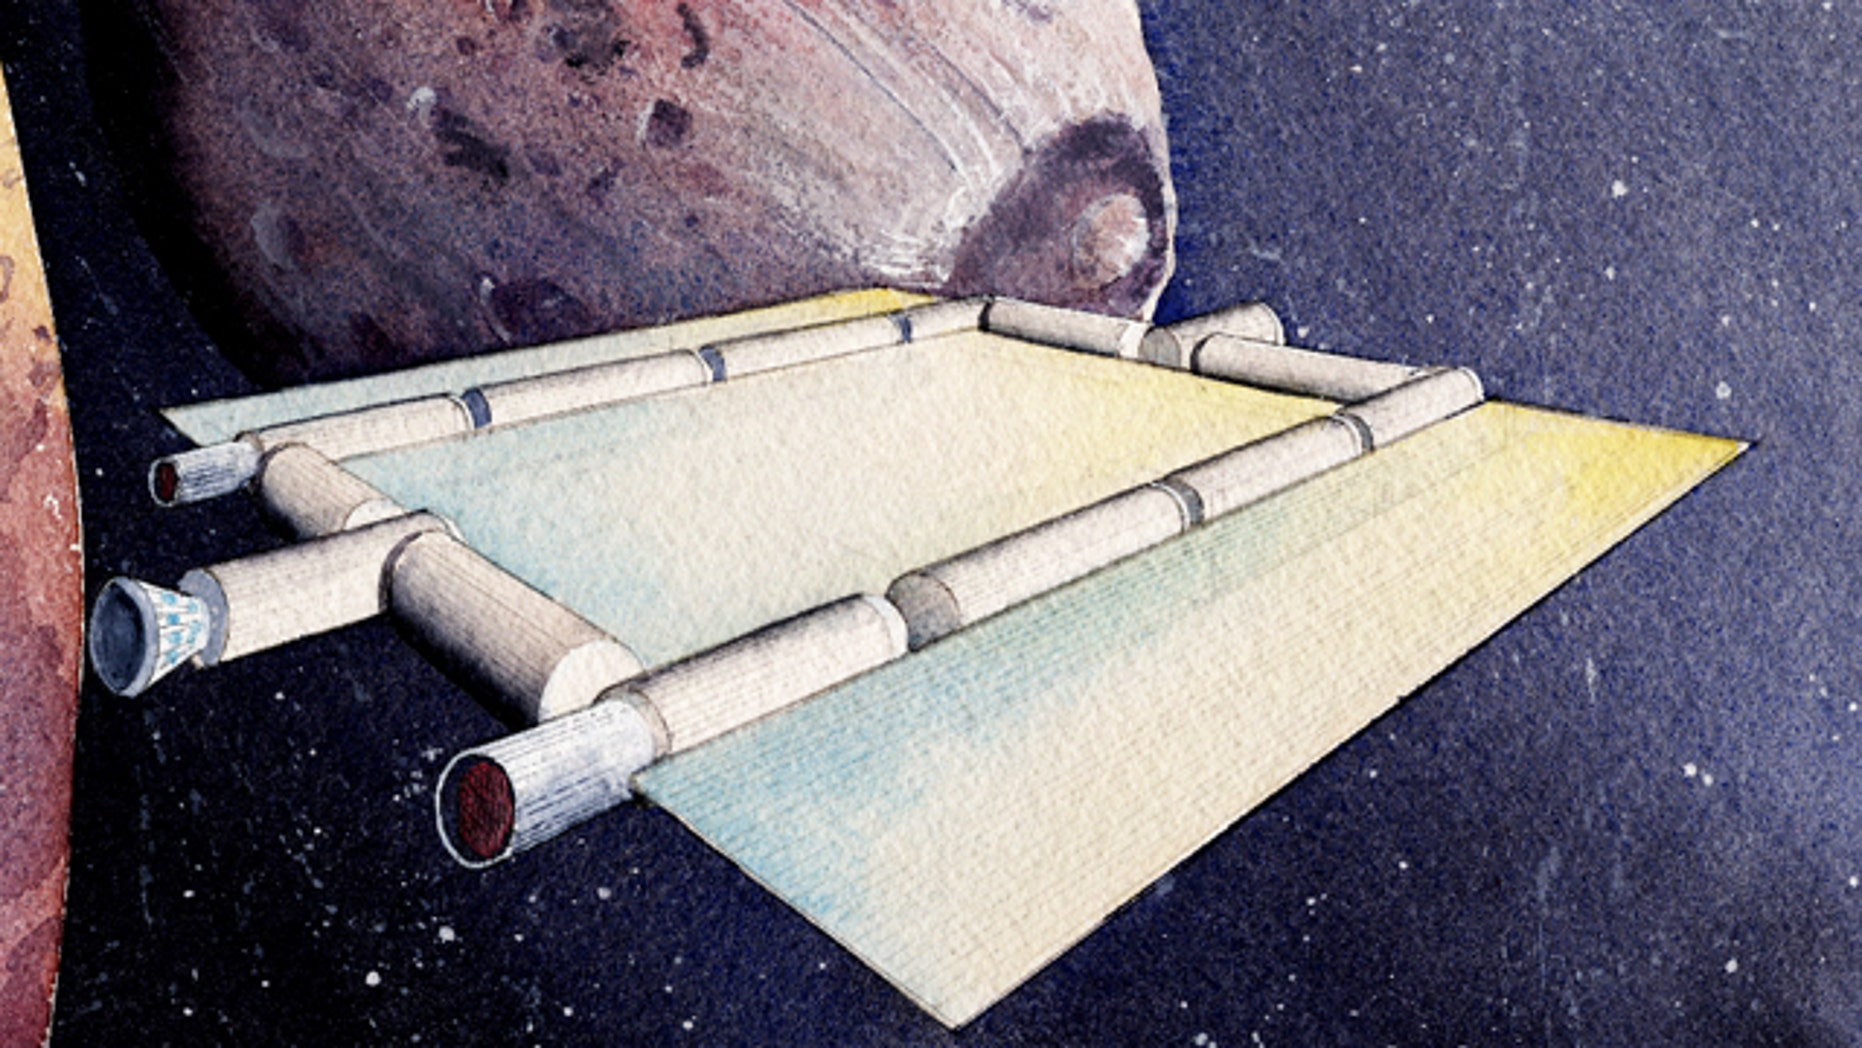 Artist's rendering of a space coach -- a water-powered concept vehicle -- cruising near the Martian moon Phobos. The cylinders are interconnected habitat modules, while the flatter regions are solar arrays.